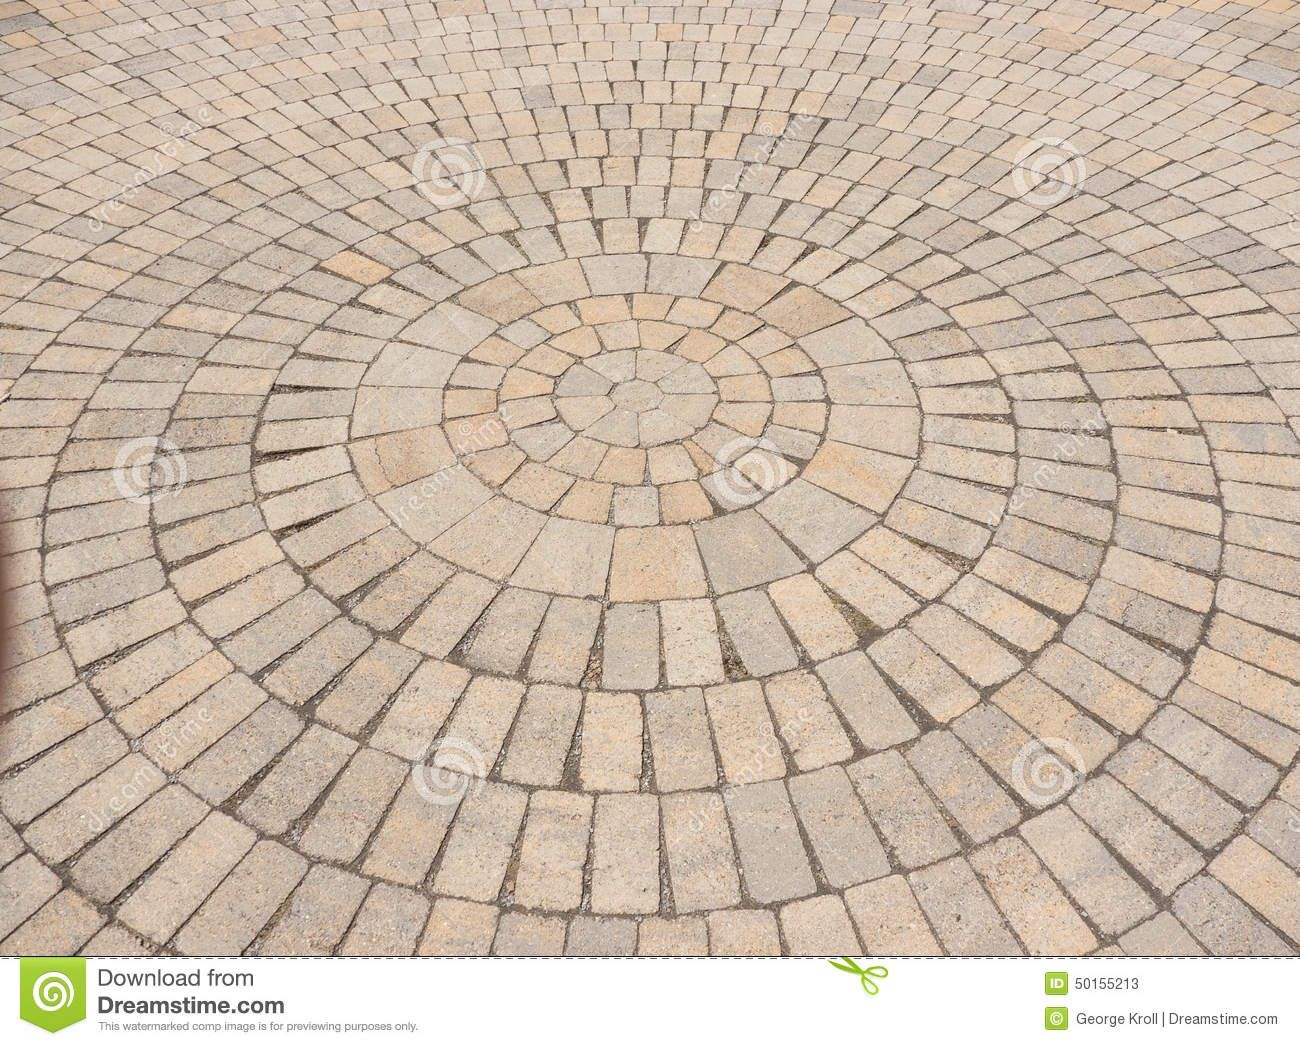 Image Result For Radial Rock Paths Pictures Paving Stones